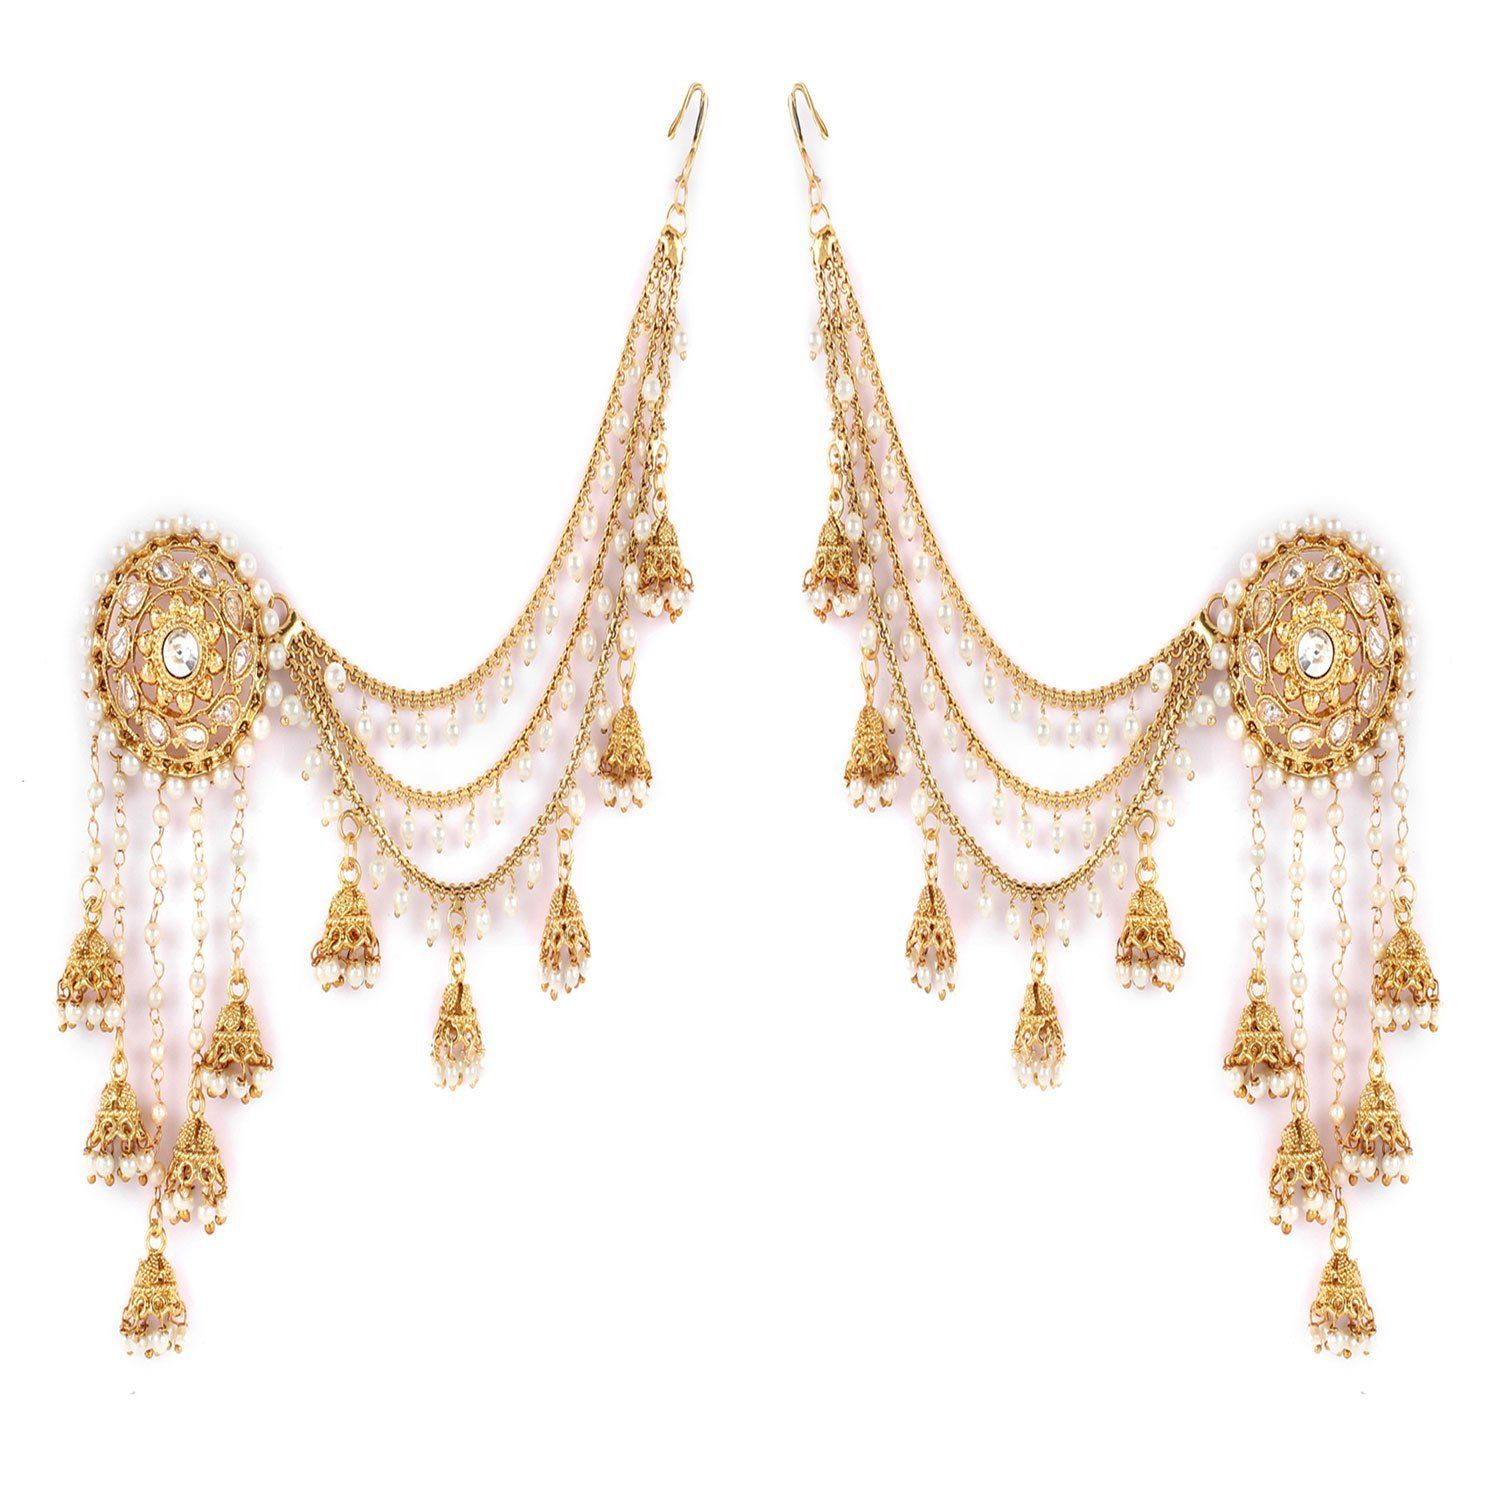 Shining Diva Fashion Gold Plated Fancy Party Wear Earring Online At Low Prices In India